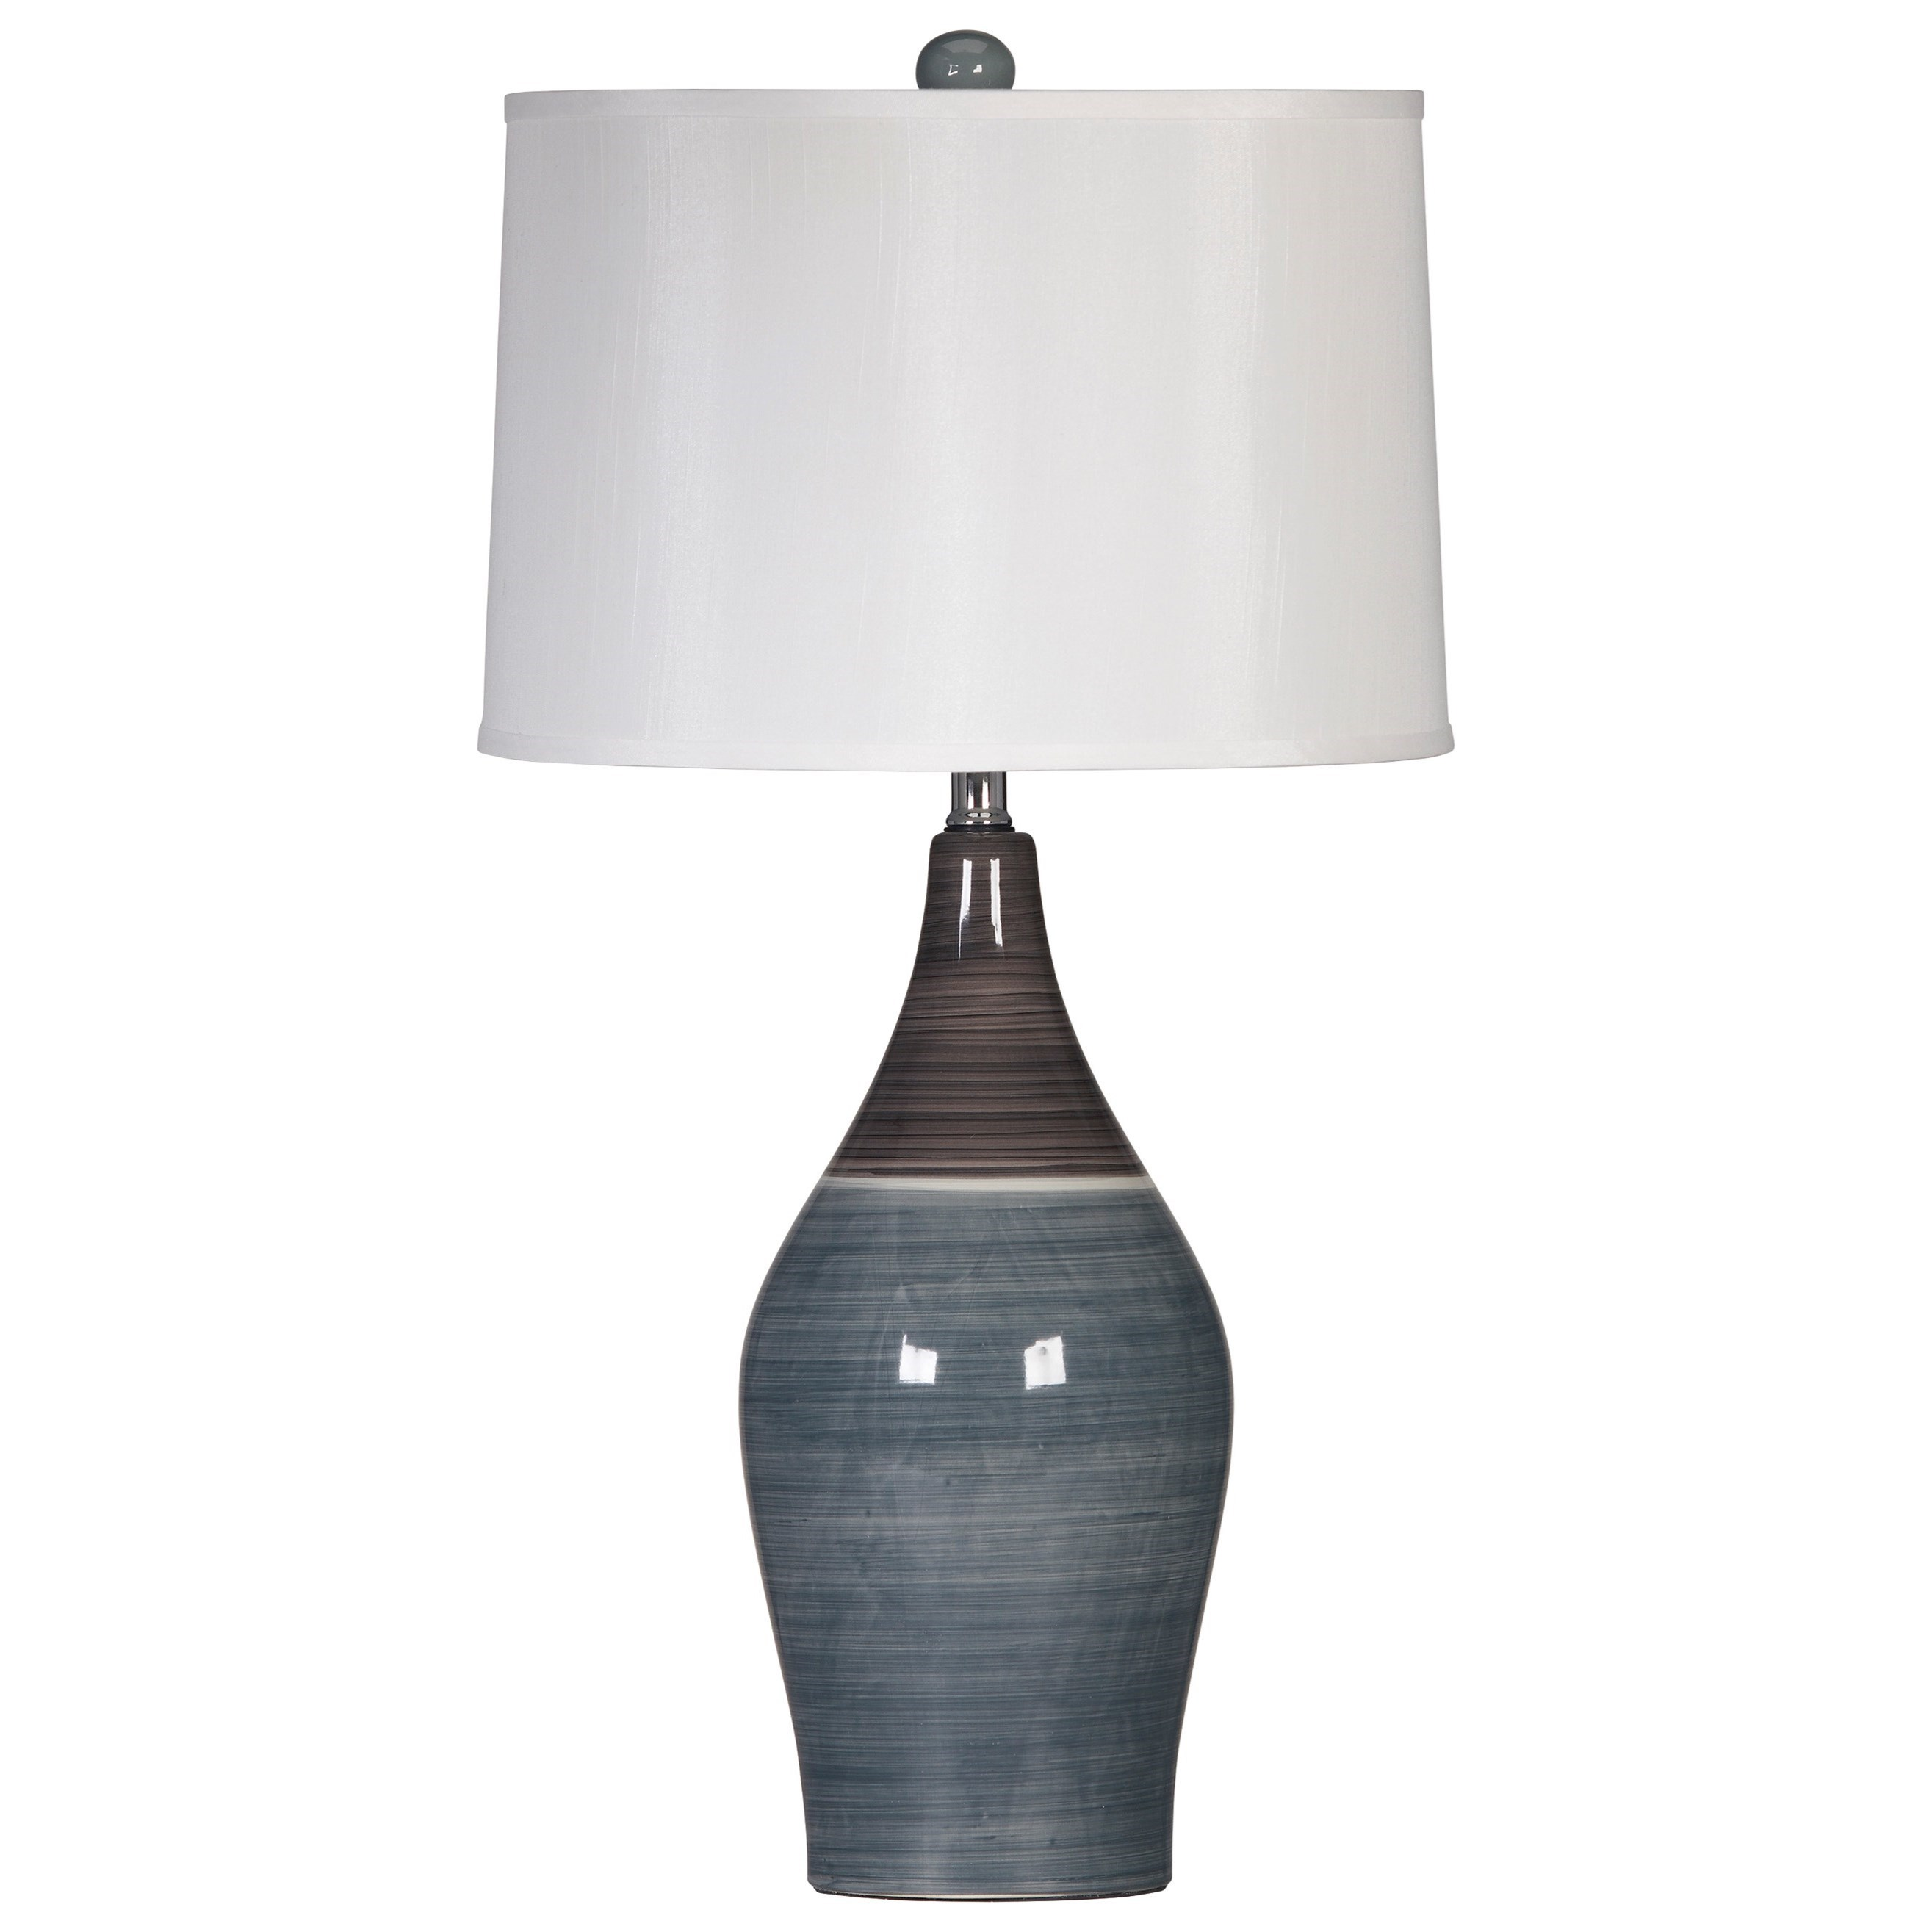 Lamps - Contemporary Set of 2 Niobe Table Lamps by Signature at Walker's Furniture